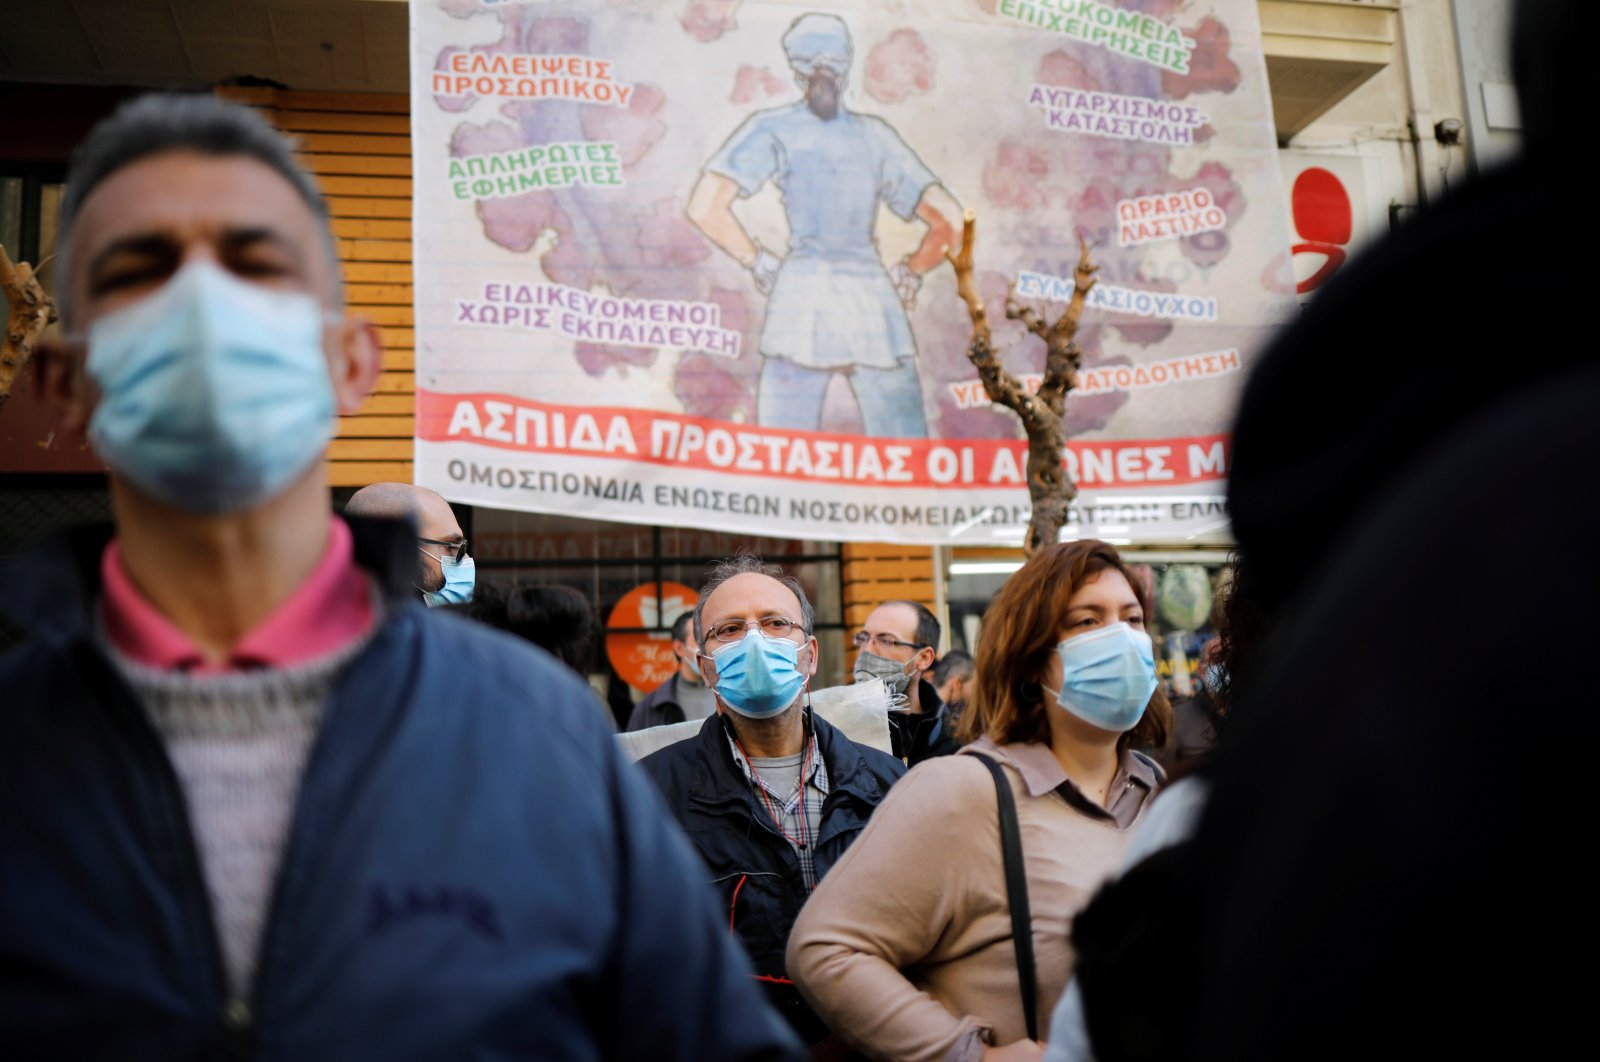 Greek hospital doctors and staff take part in a demonstration against a lack of intensive care units at public hospitals, amidst the spread of the coronavirus disease (COVID-19) in Athens, Greece, Feb. 23, 2021. (Reuters Photo)